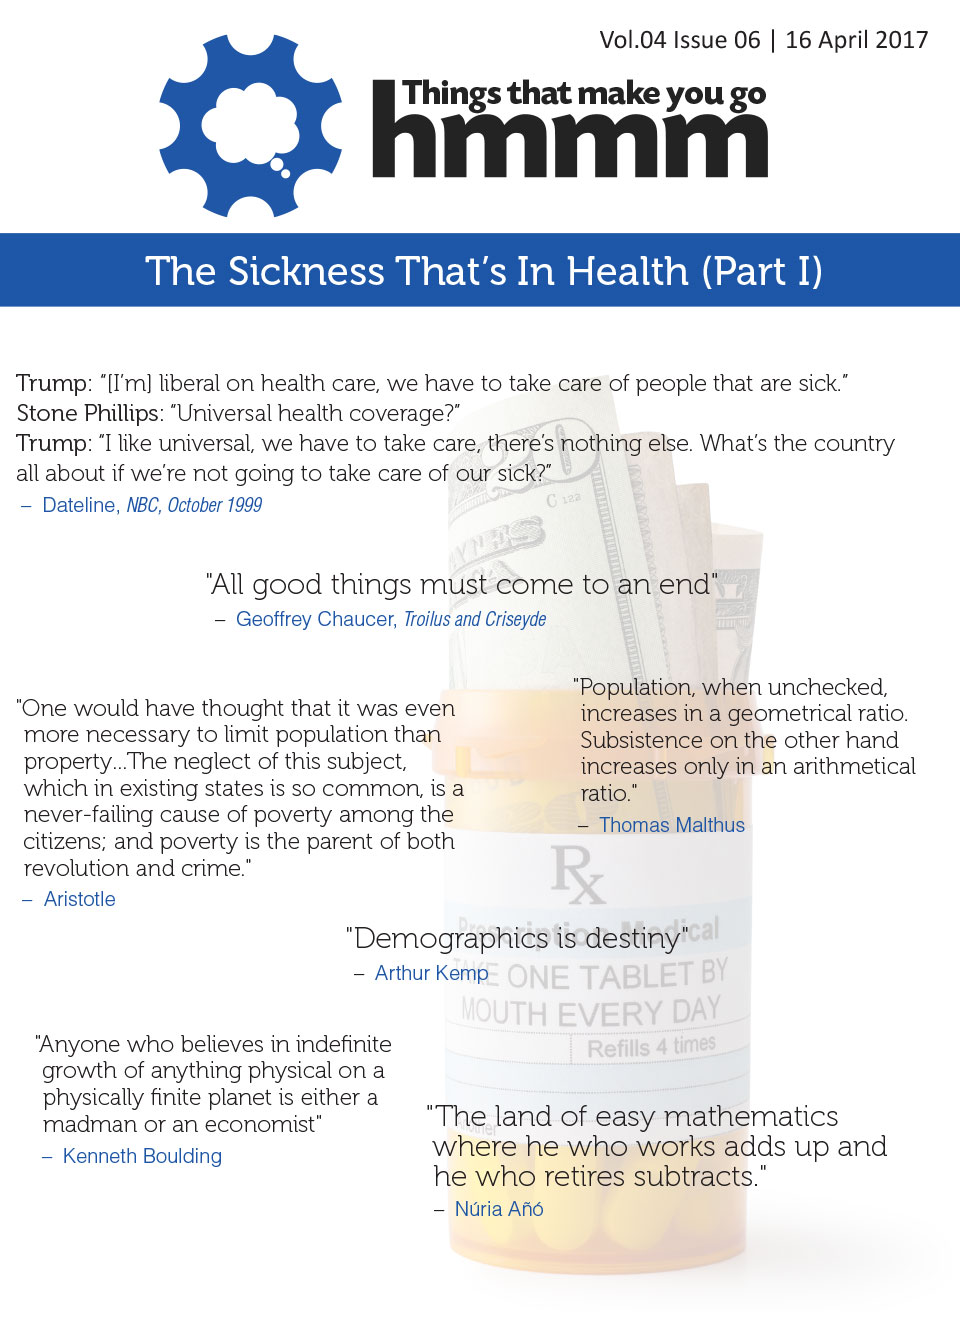 TTMYGH_2017_04_16_The_Sickness_Thats_In_Health_Part_I